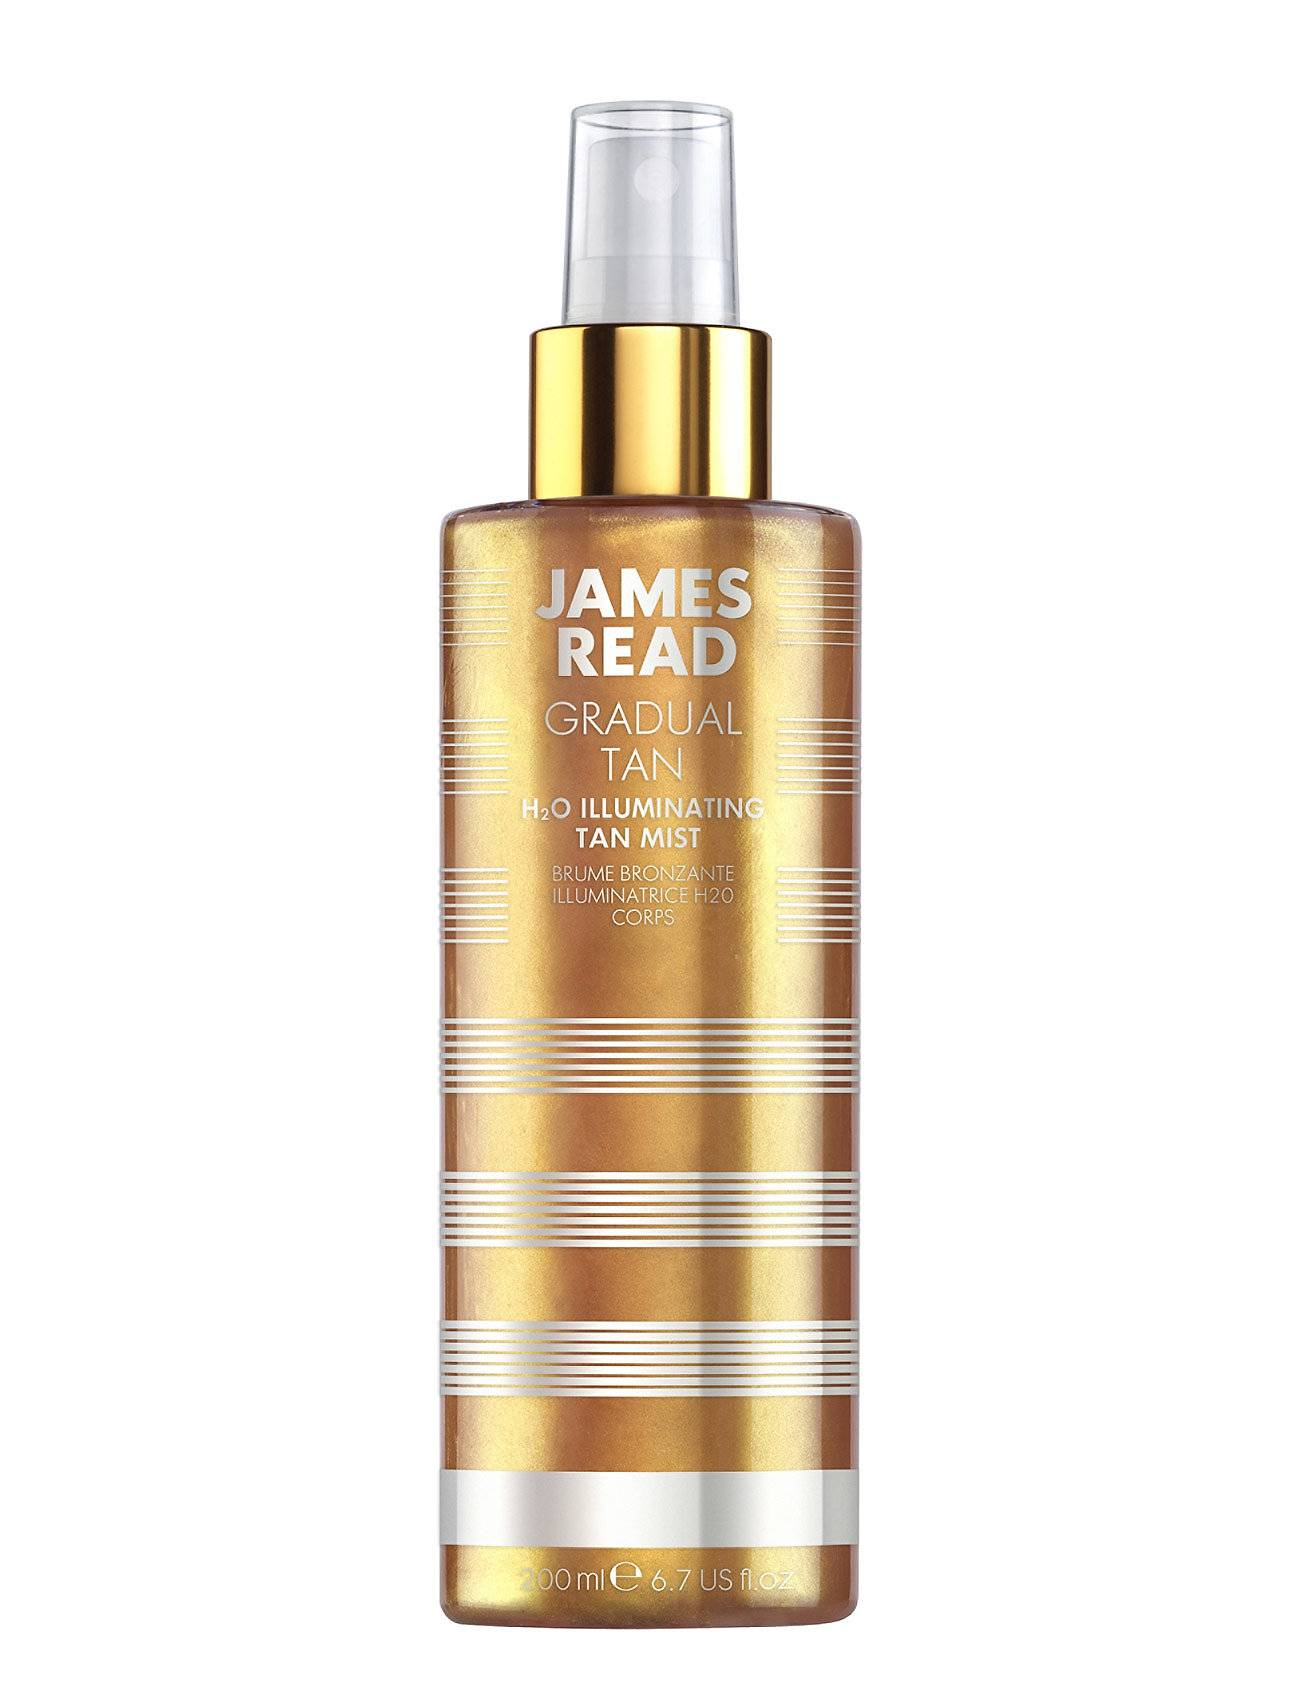 James Read H2o Tan Mist Body Beauty WOMEN Skin Care Sun Products Self Tanners Nude James Read